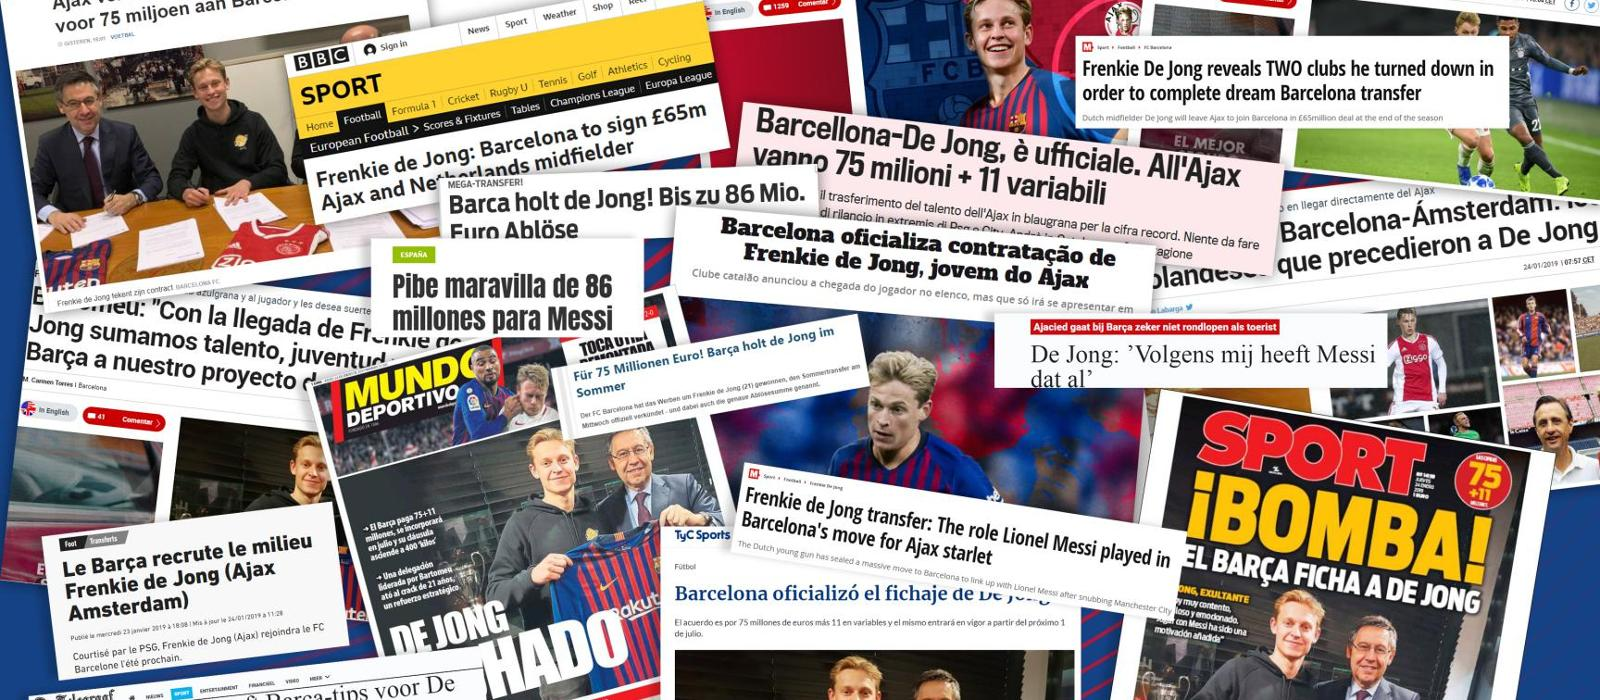 De Jong move makes global headlines